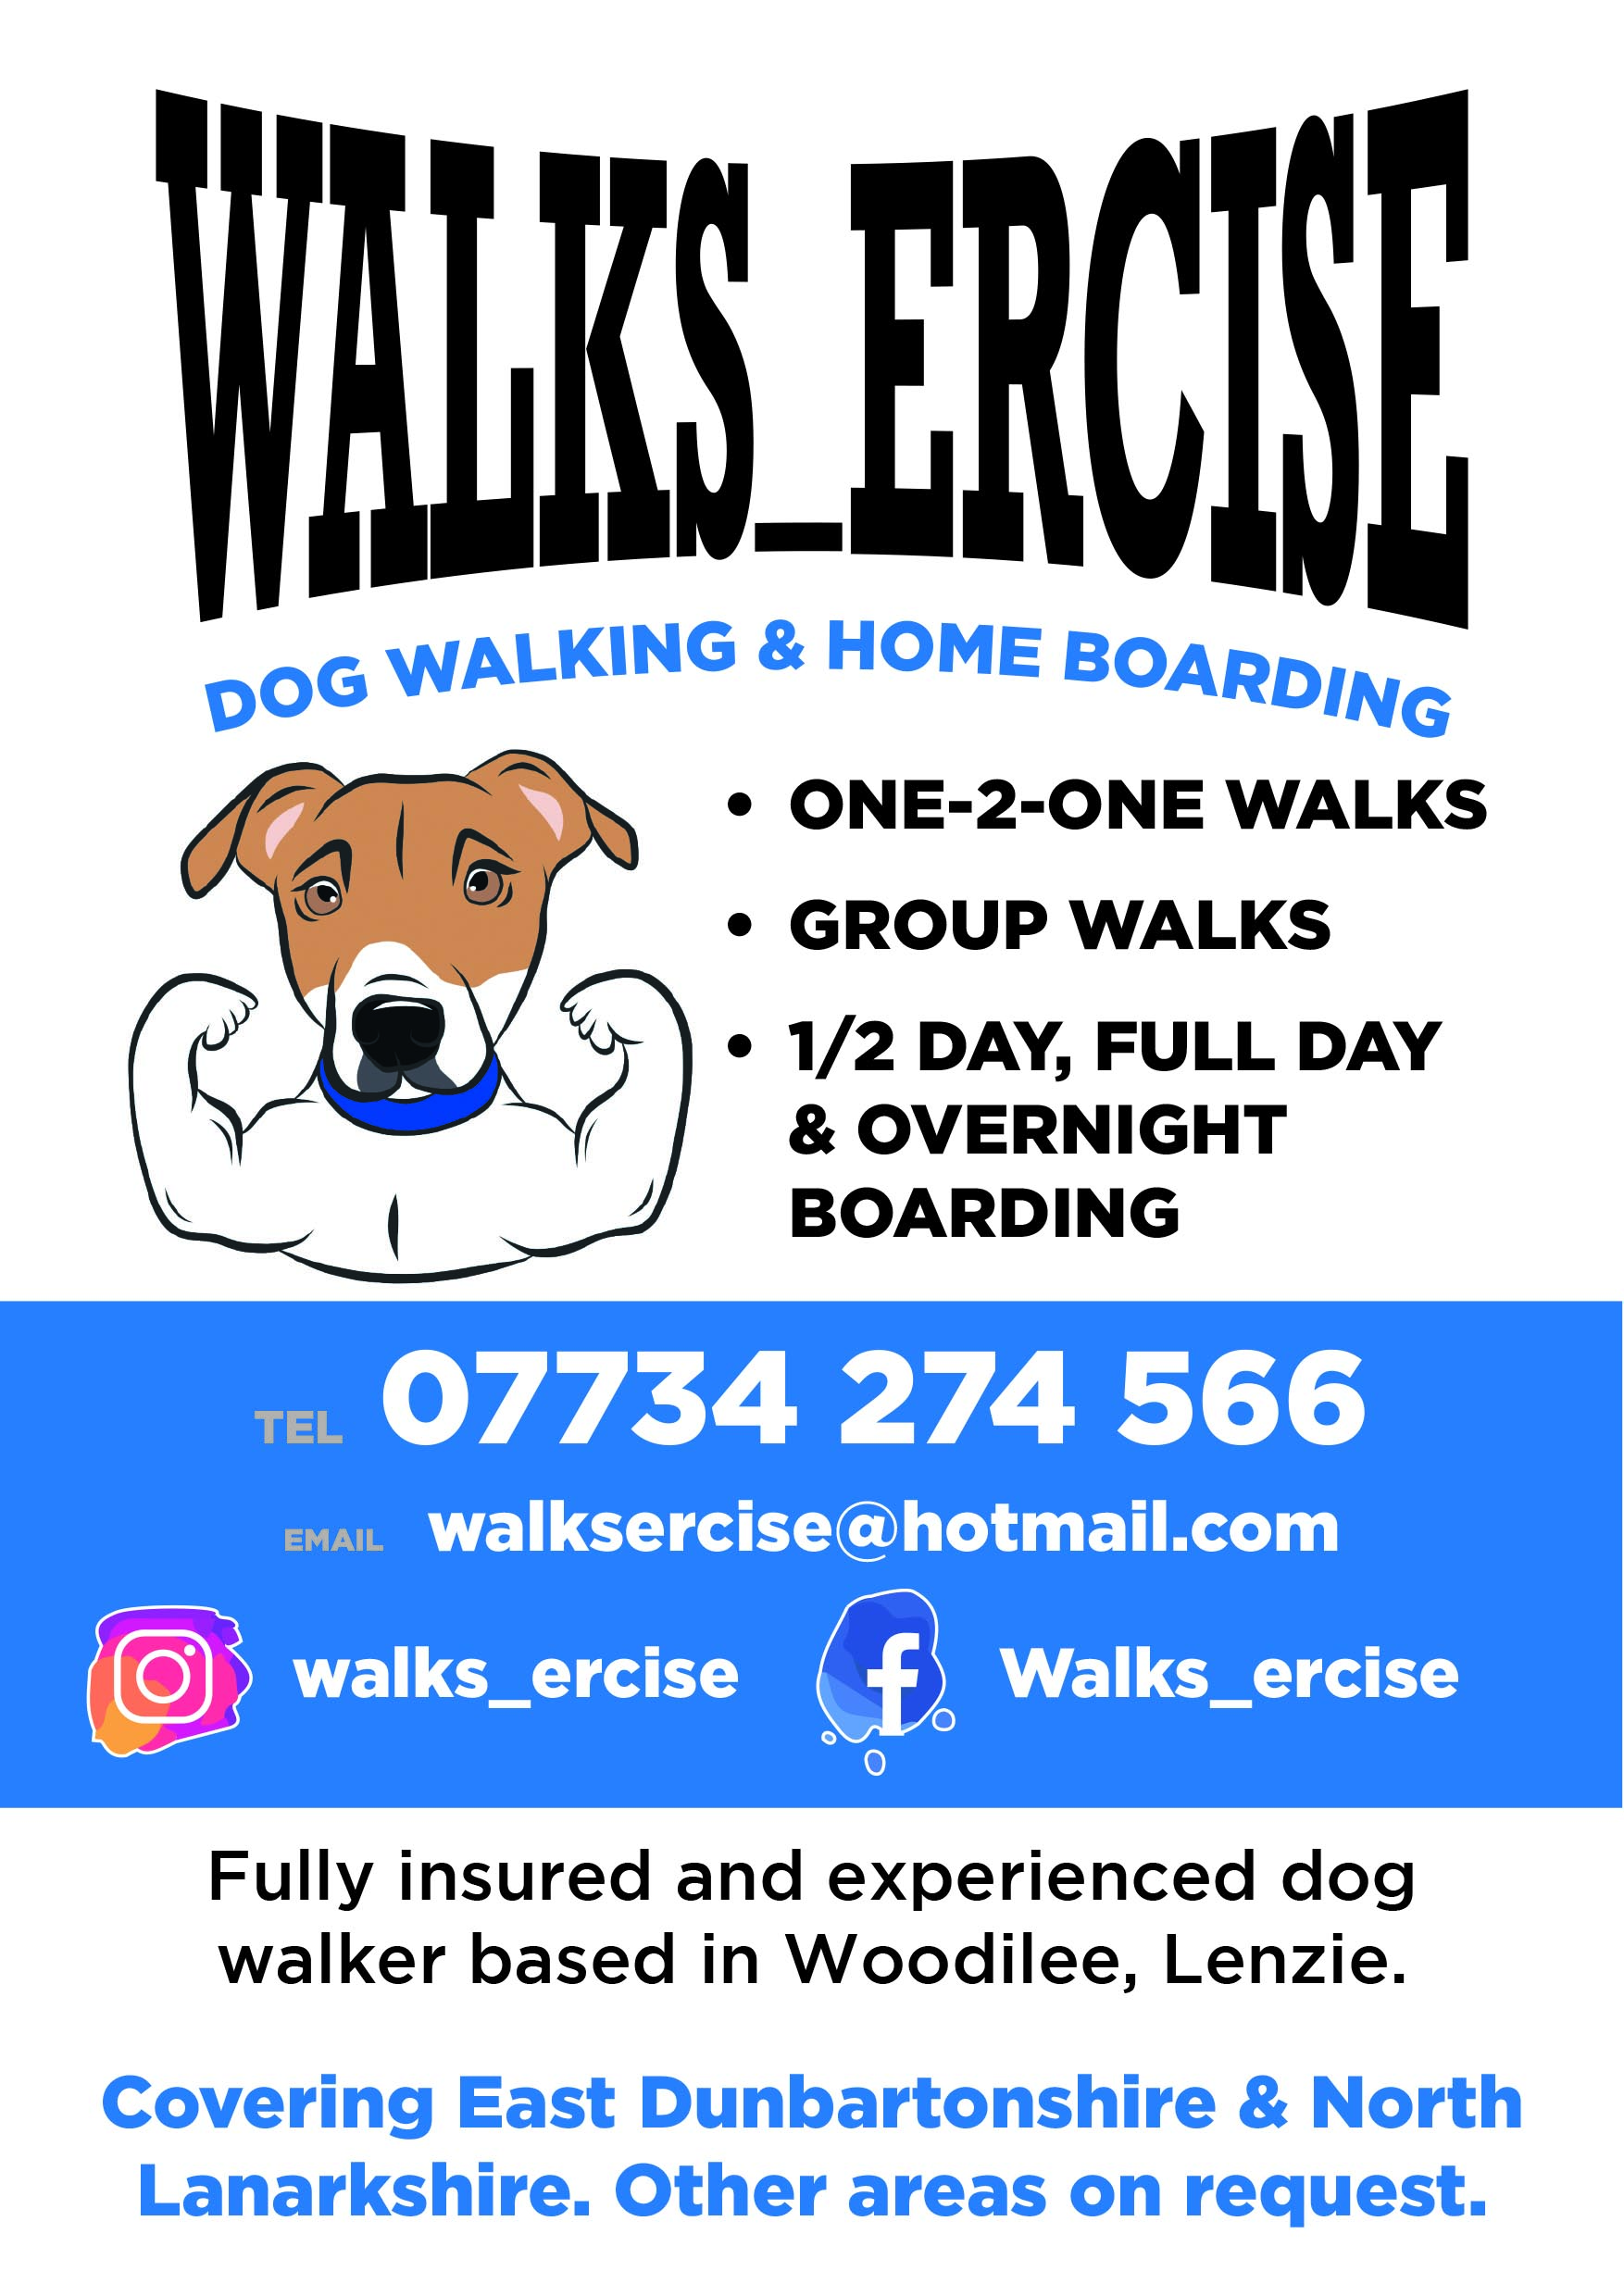 Walks_ercise